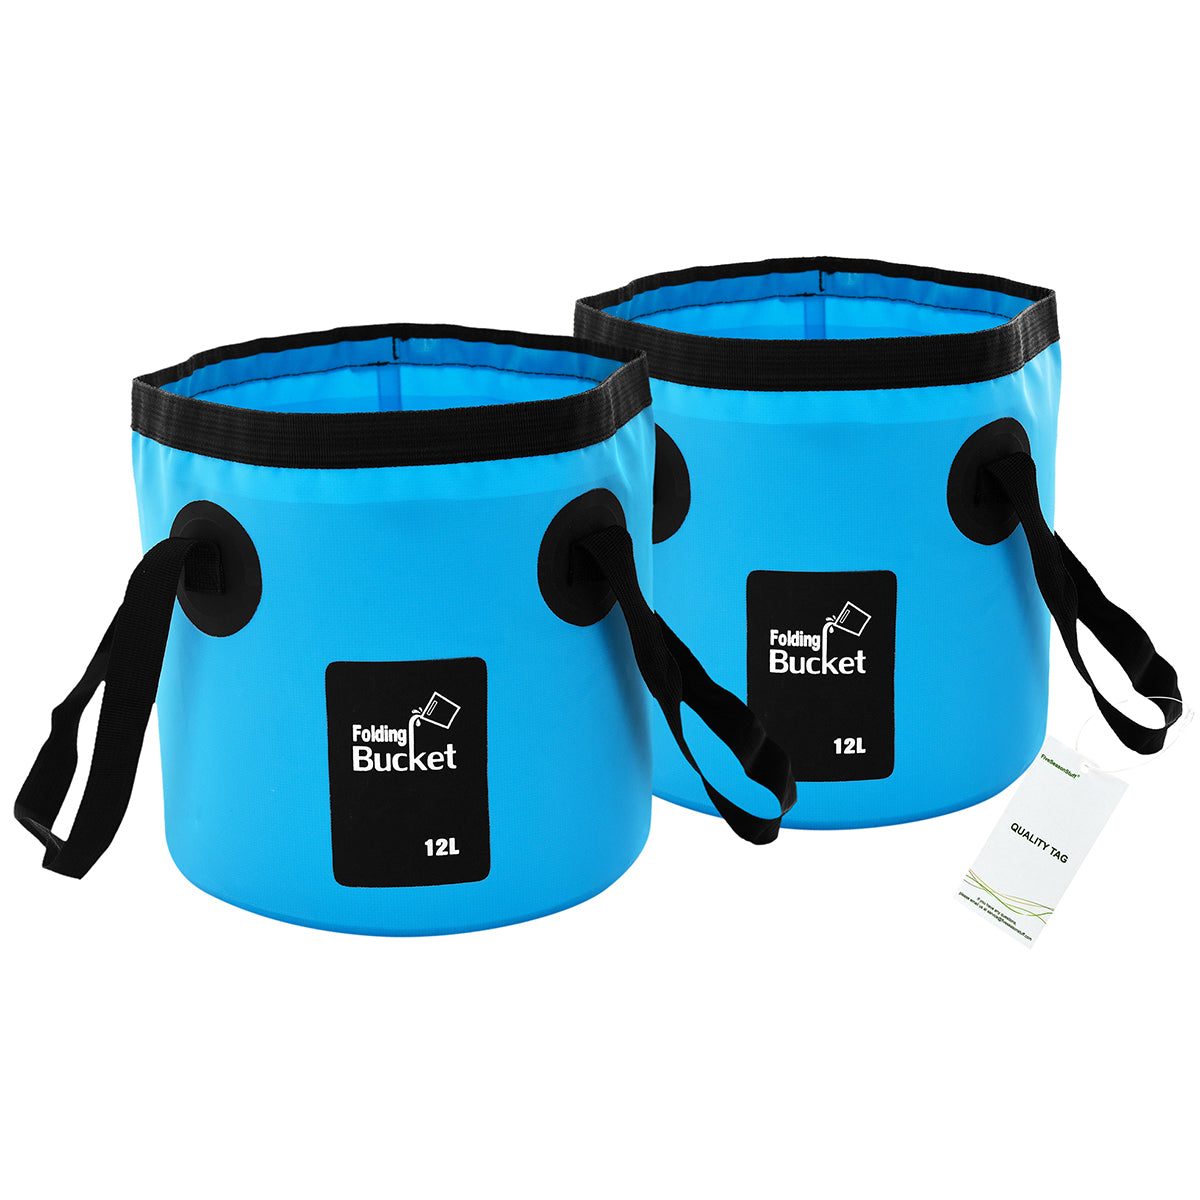 Two standing blue collapsible buckets with handles display with a white background